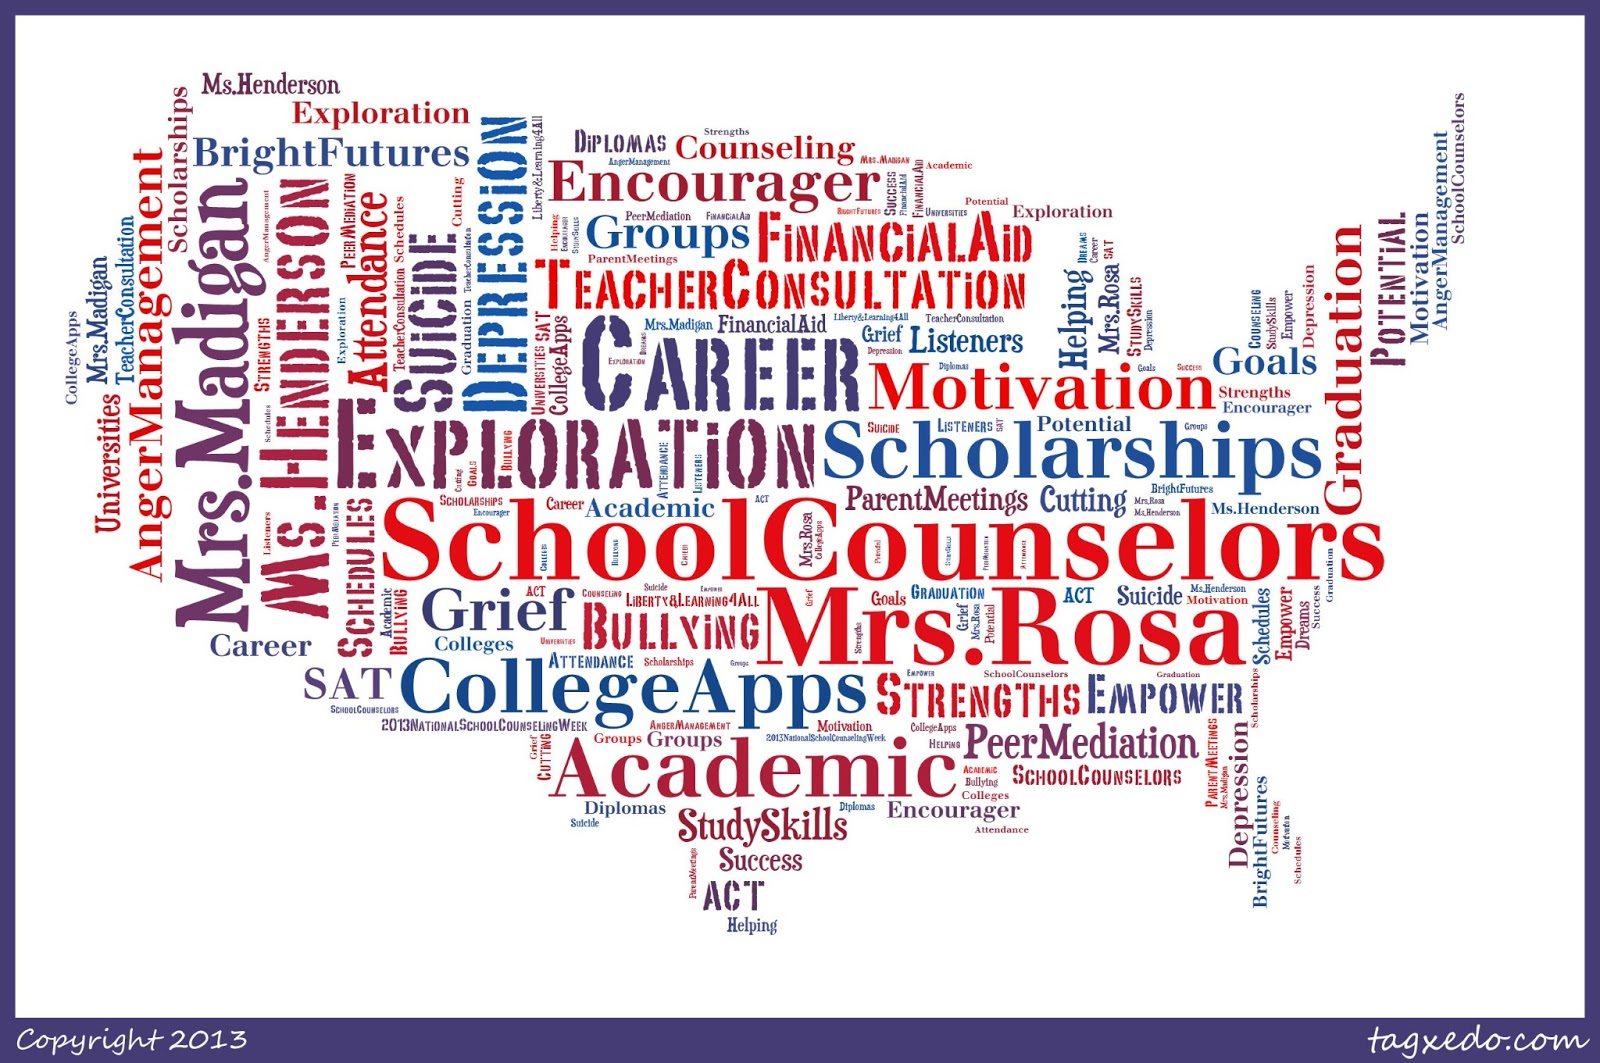 The Resourceful School Counselor: Word Splash